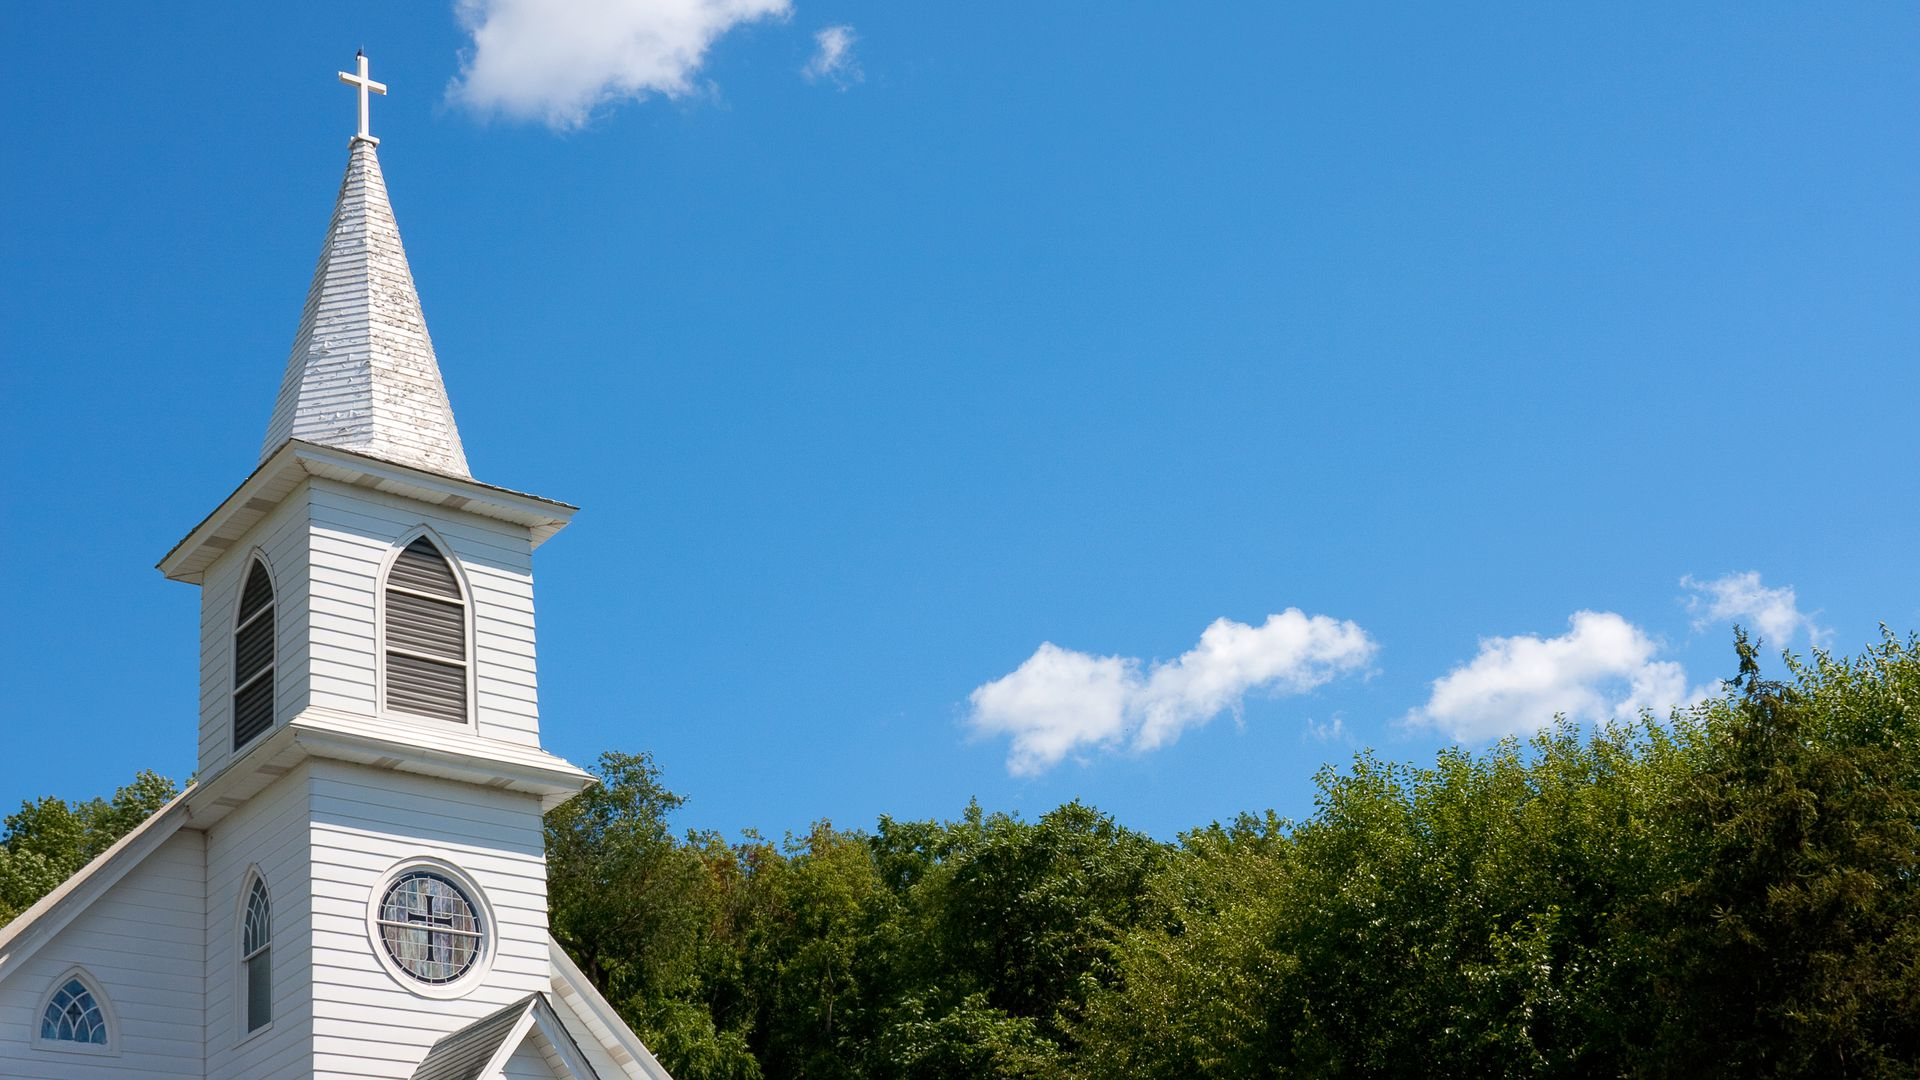 This is an image of a white church against a blue sky.